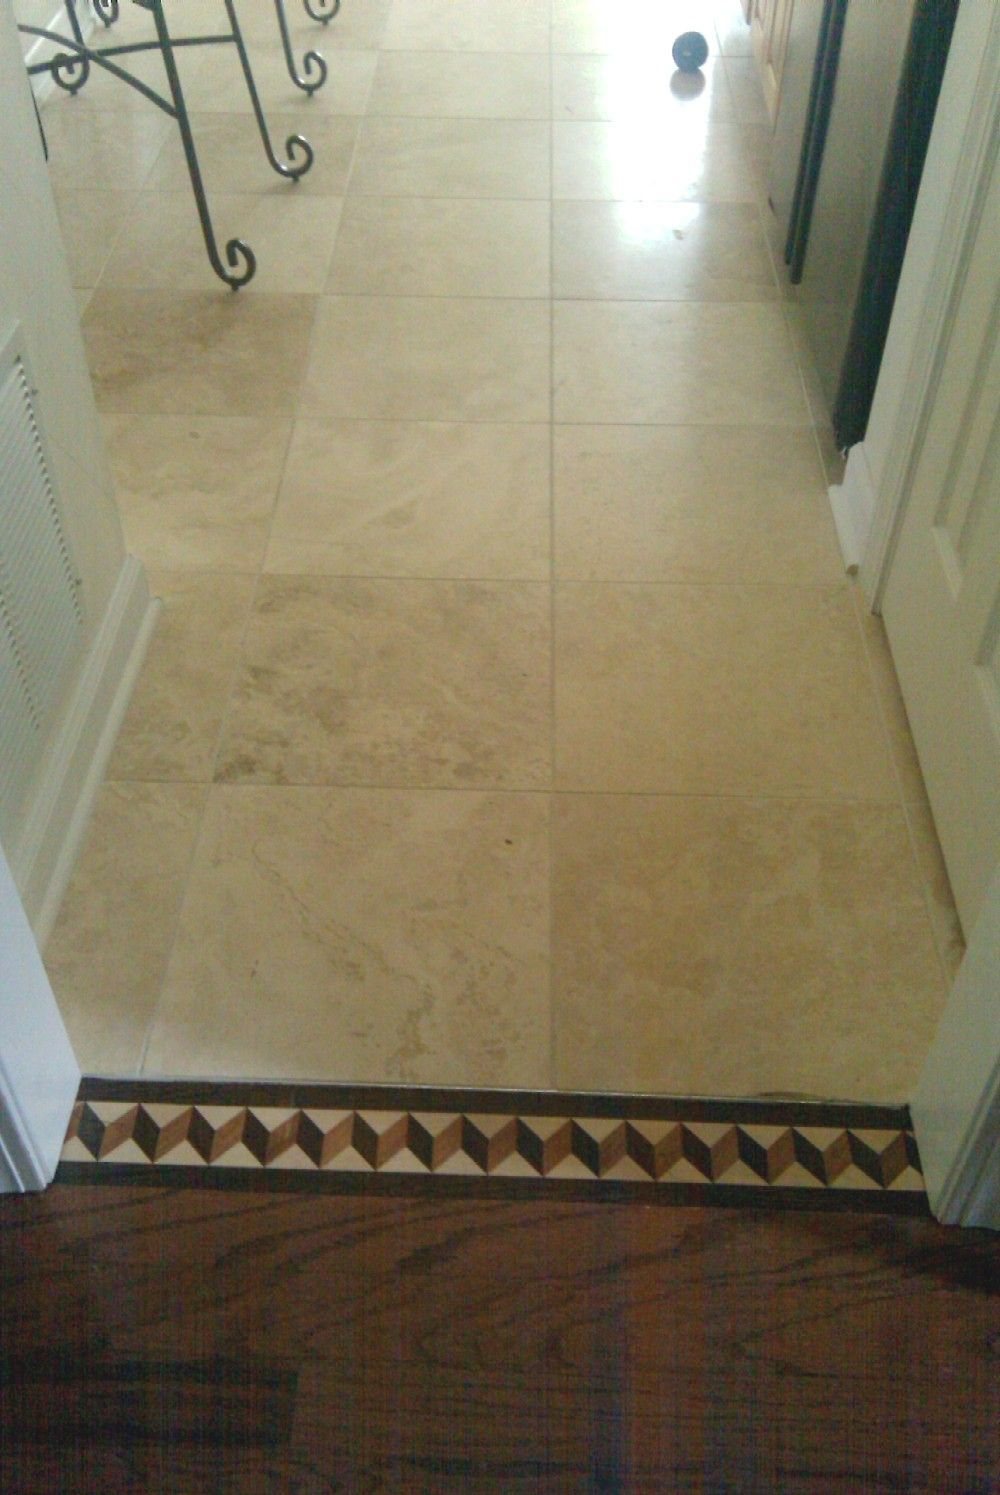 Border Transition From Wood Floor To Tile Flooring Transition Flooring Flooring Ceramic Floor Tiles